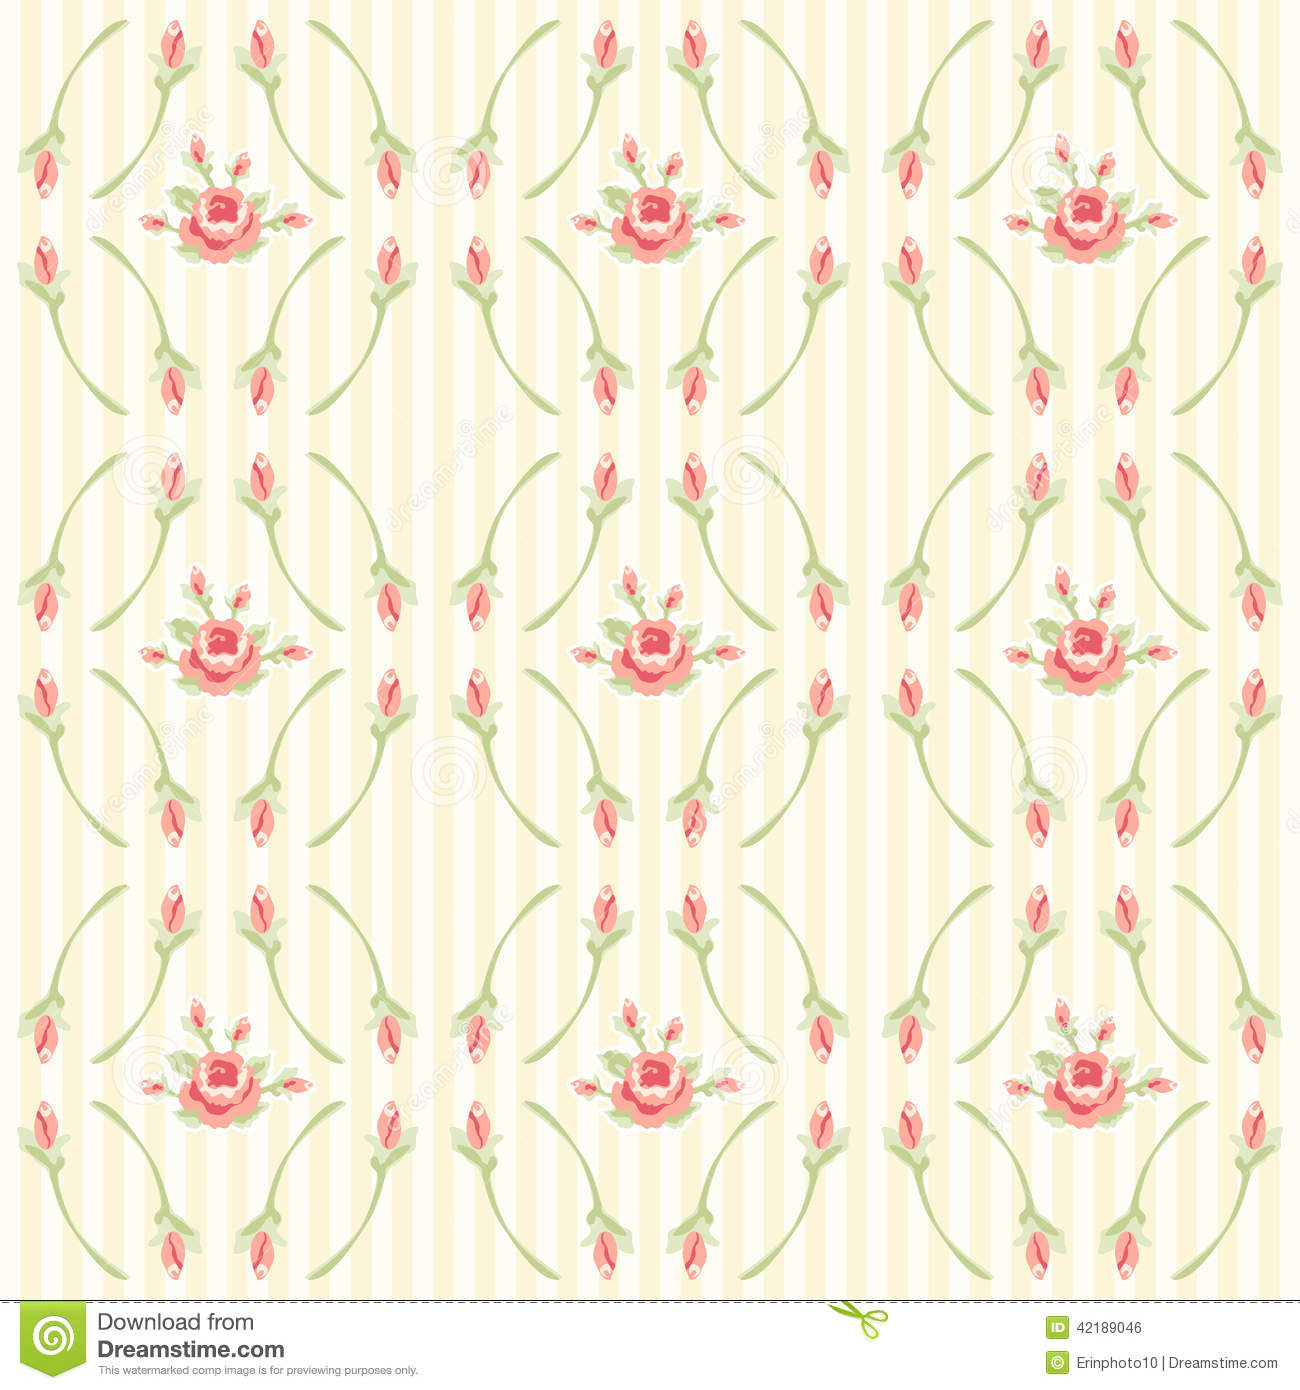 Vintage Floral Pattern With Roses In Shabby Chic Style On Striped Background